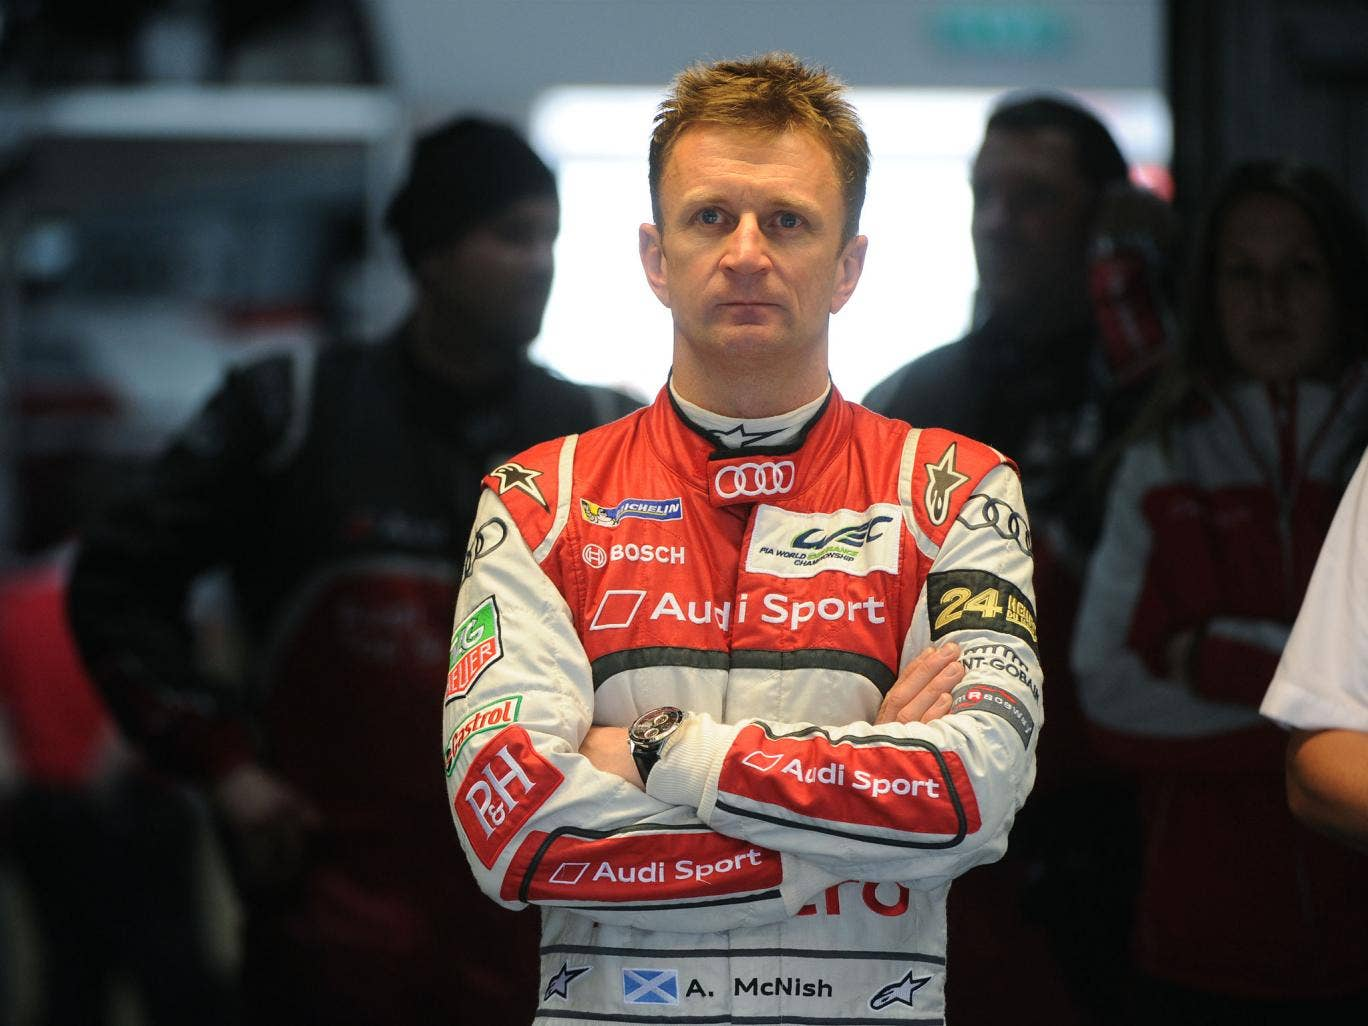 Allan McNish has announced his retirement from motor racing